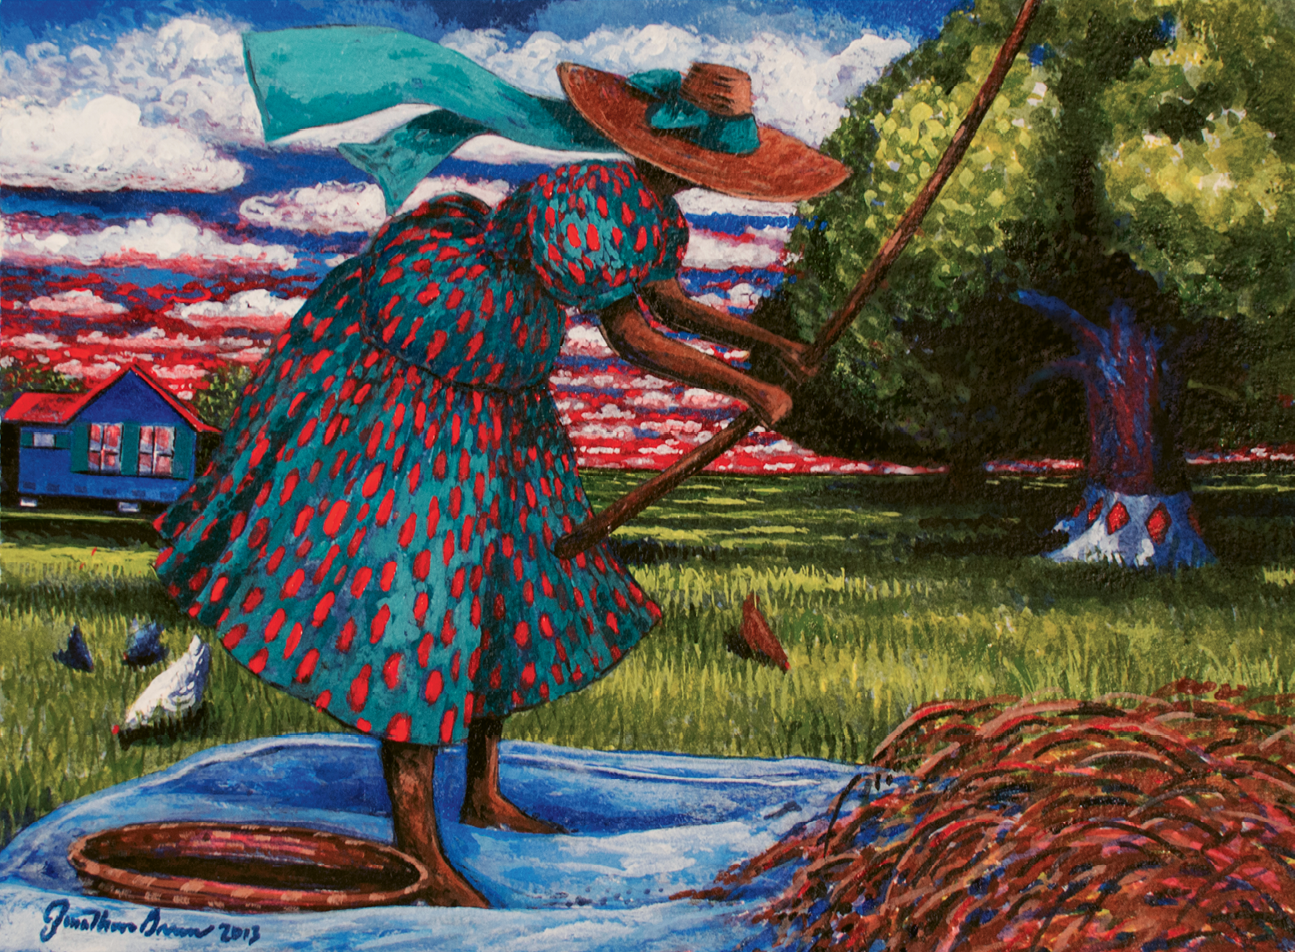 Hulling Home Rice (acrylic on watercolor, 11 X 14 1/2 inches, 2012)